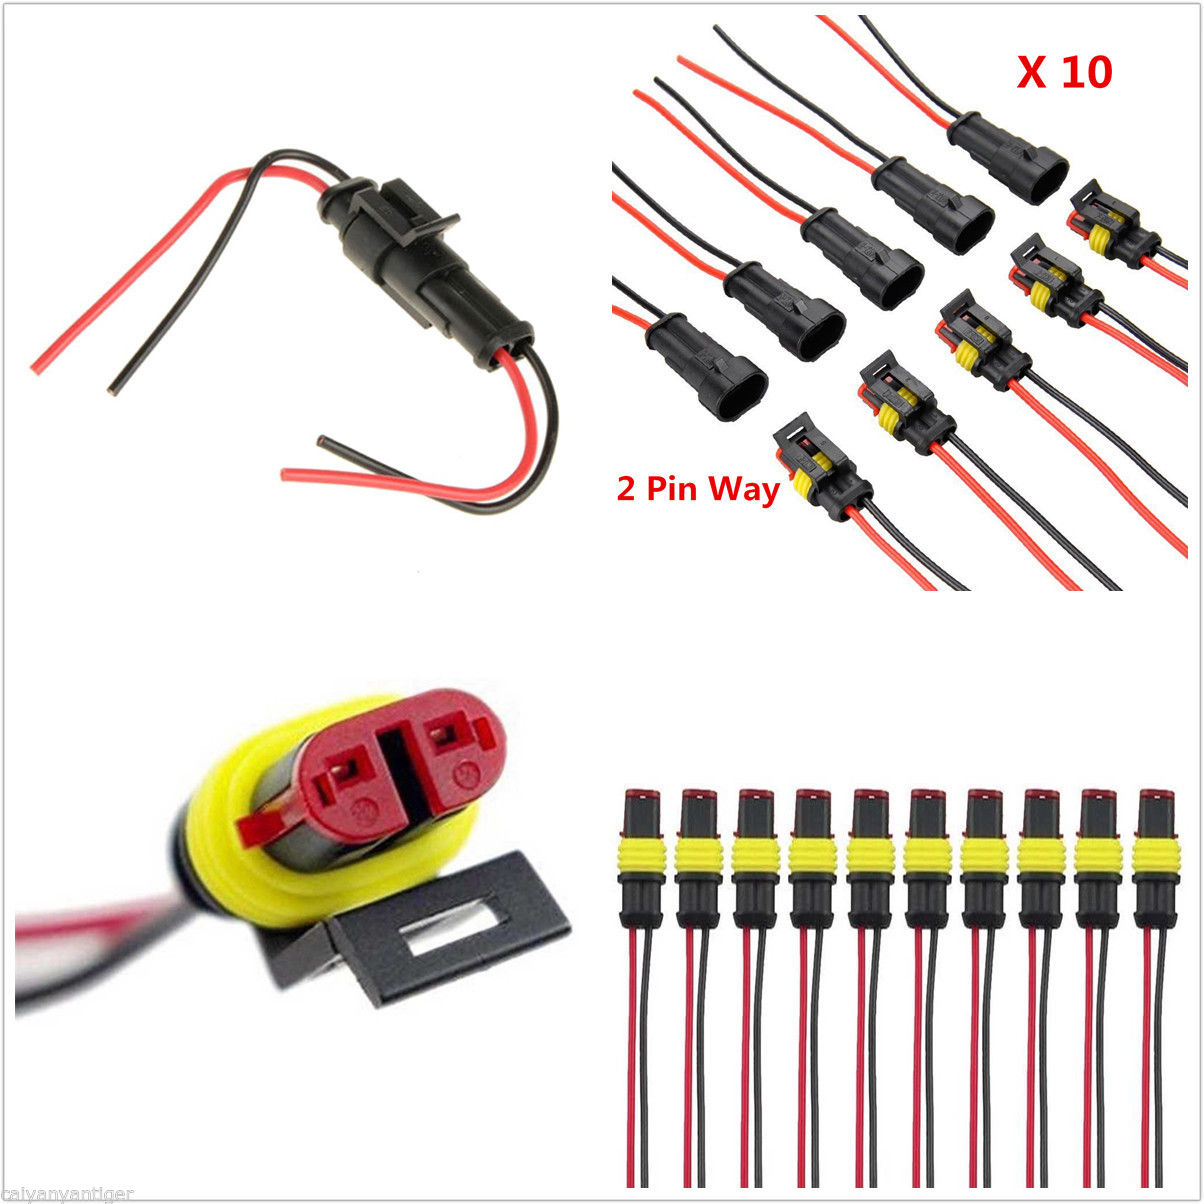 10 kit 2 Pin Way Car Waterproof Electrical Cable W/ Terminal Wire Connector Plug цена и фото